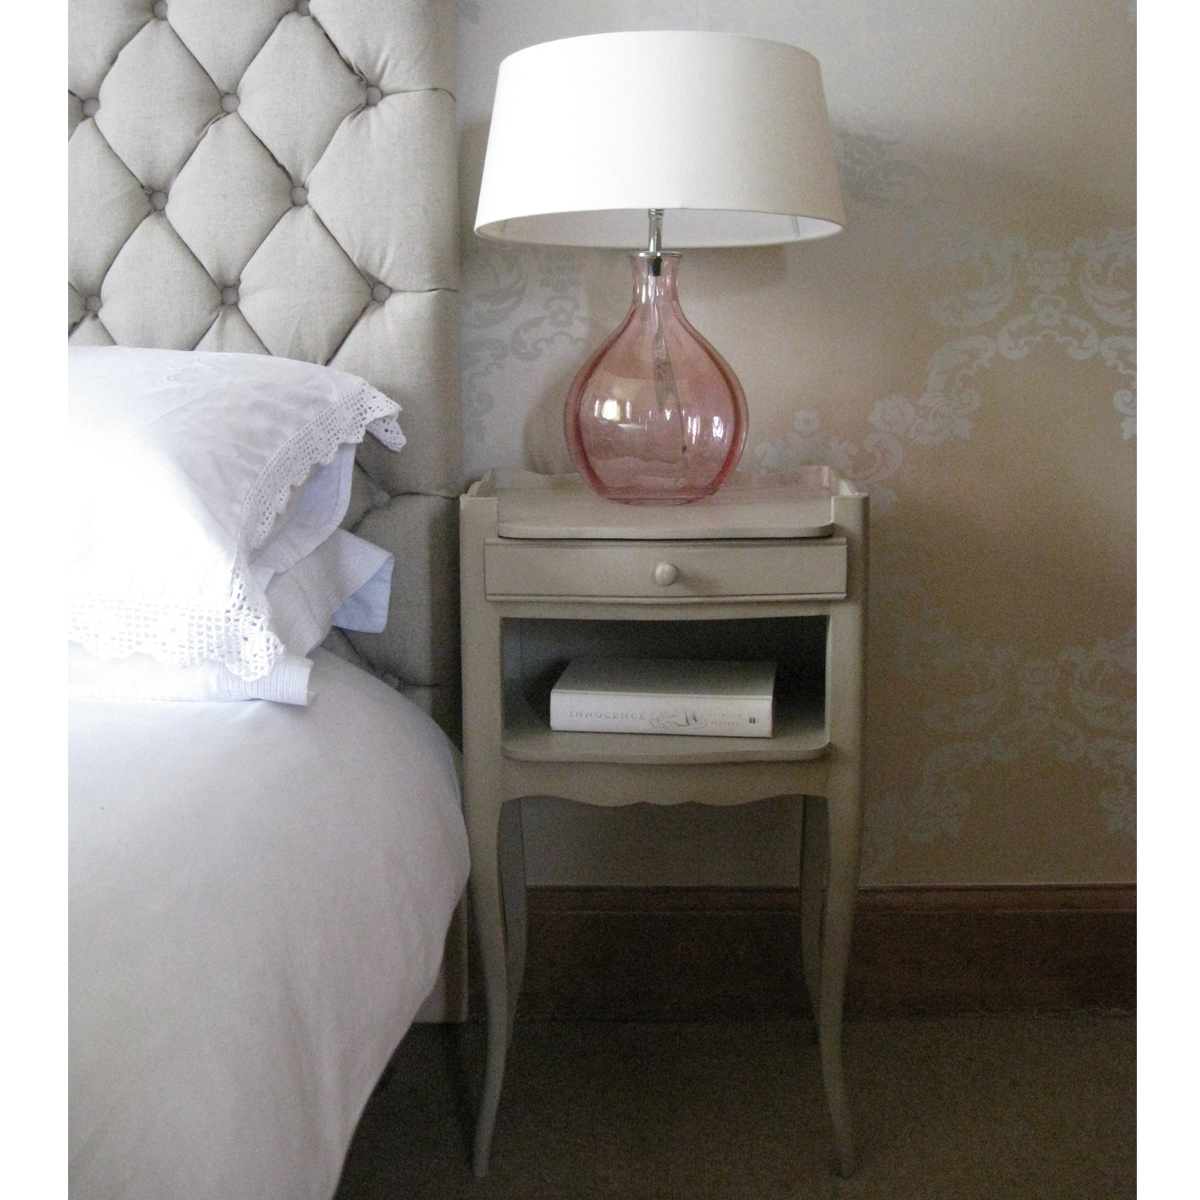 lamp, padded quilted headboard, bedside table